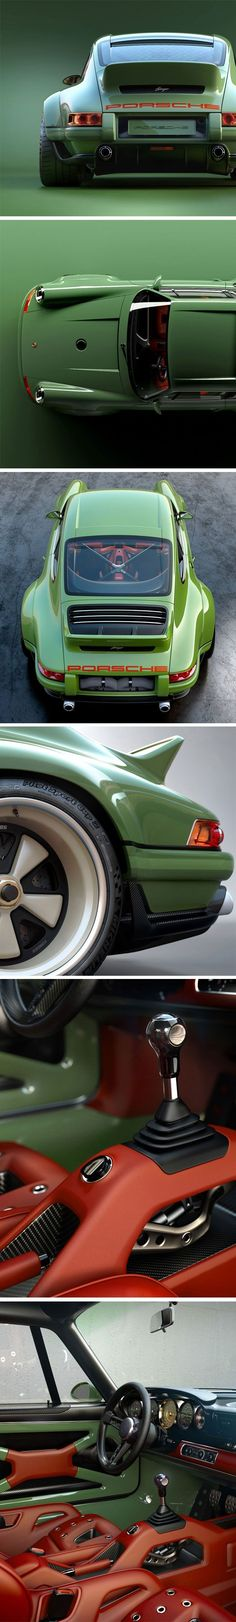 A Custom 1990 Porsche 964, The First In A Limited Edition Series #Porsche